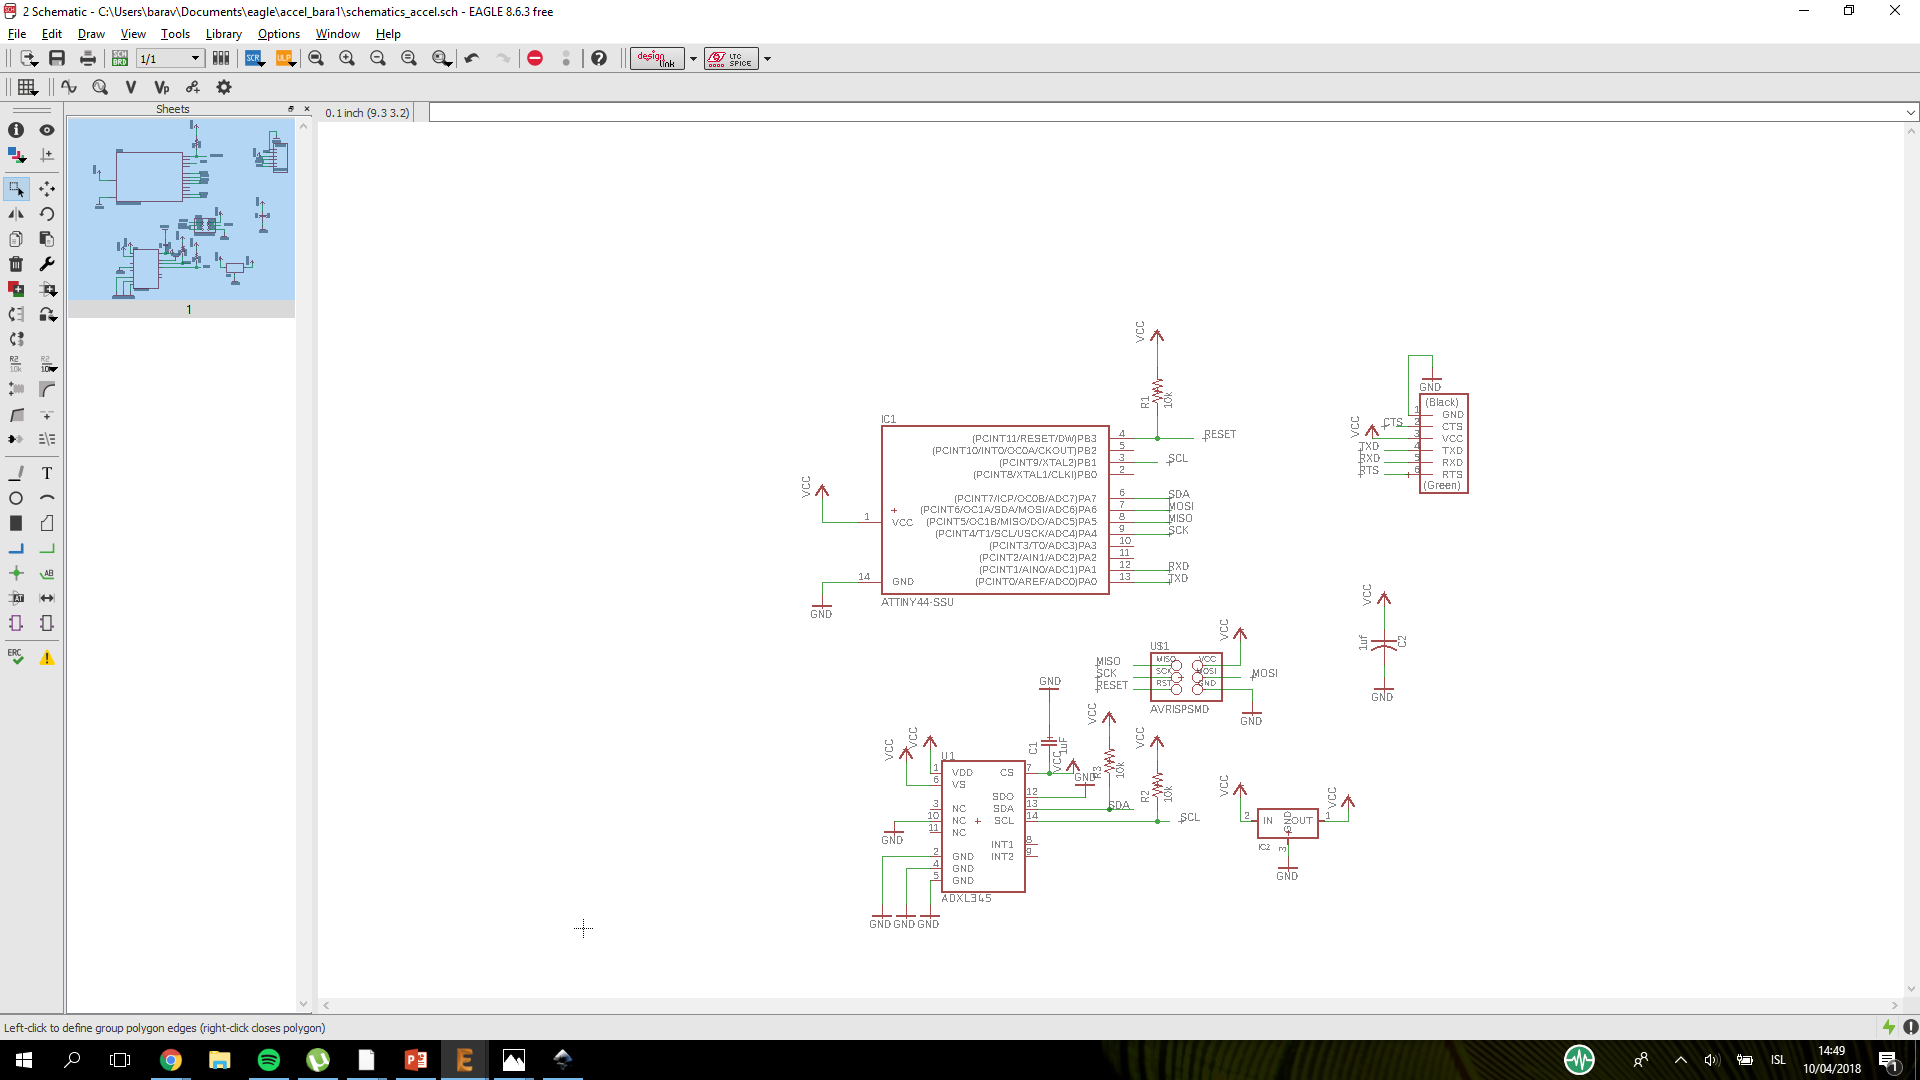 Week 12 Accelerometer Circuitschematic I Used The Smalles Tooth 001 And Board Came Out Good Now Comes To Hard Part Soldering It Took Some Time But Managed